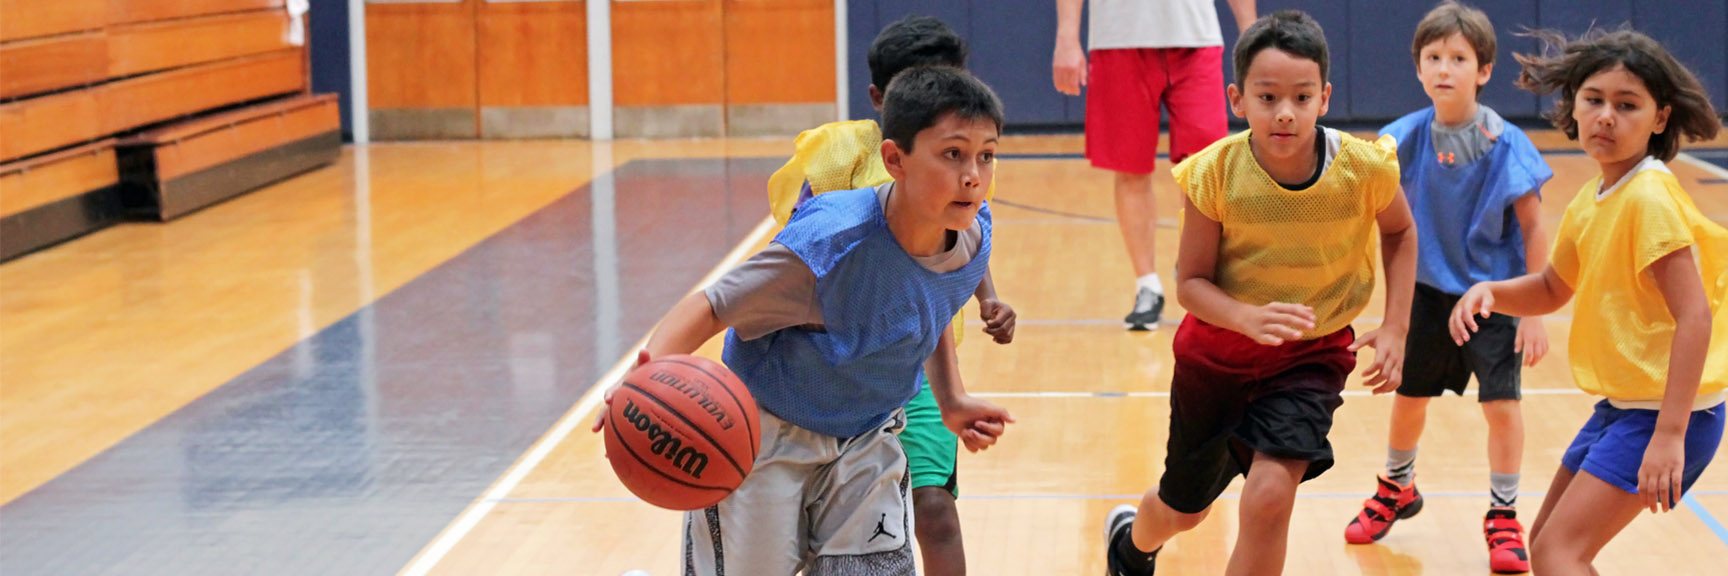 JCC of the Lehigh Valley Basketball Camp Youth Sports  CC Attribution 3.0 Kaitlyn Stefanowicz